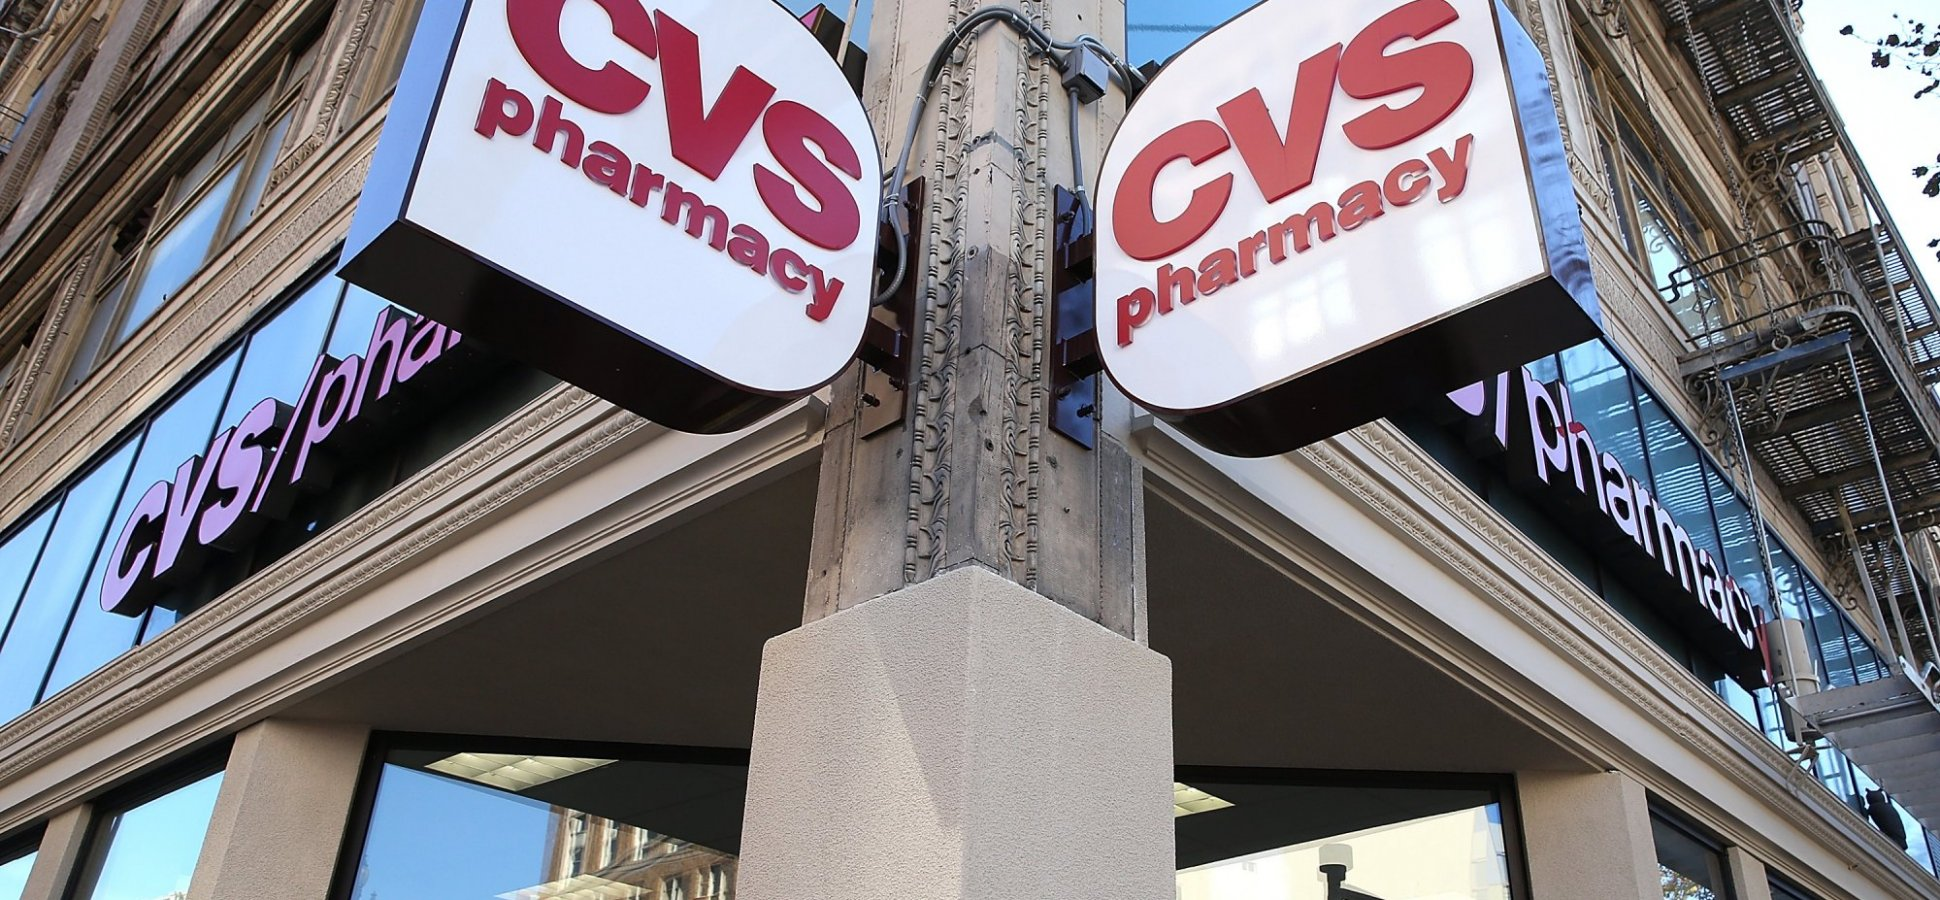 CVS Just Put a Controversial Product on Their Shelves That No Other Major Drugstore Has Ever Sold. It's Either Outrageous or Brilliant.